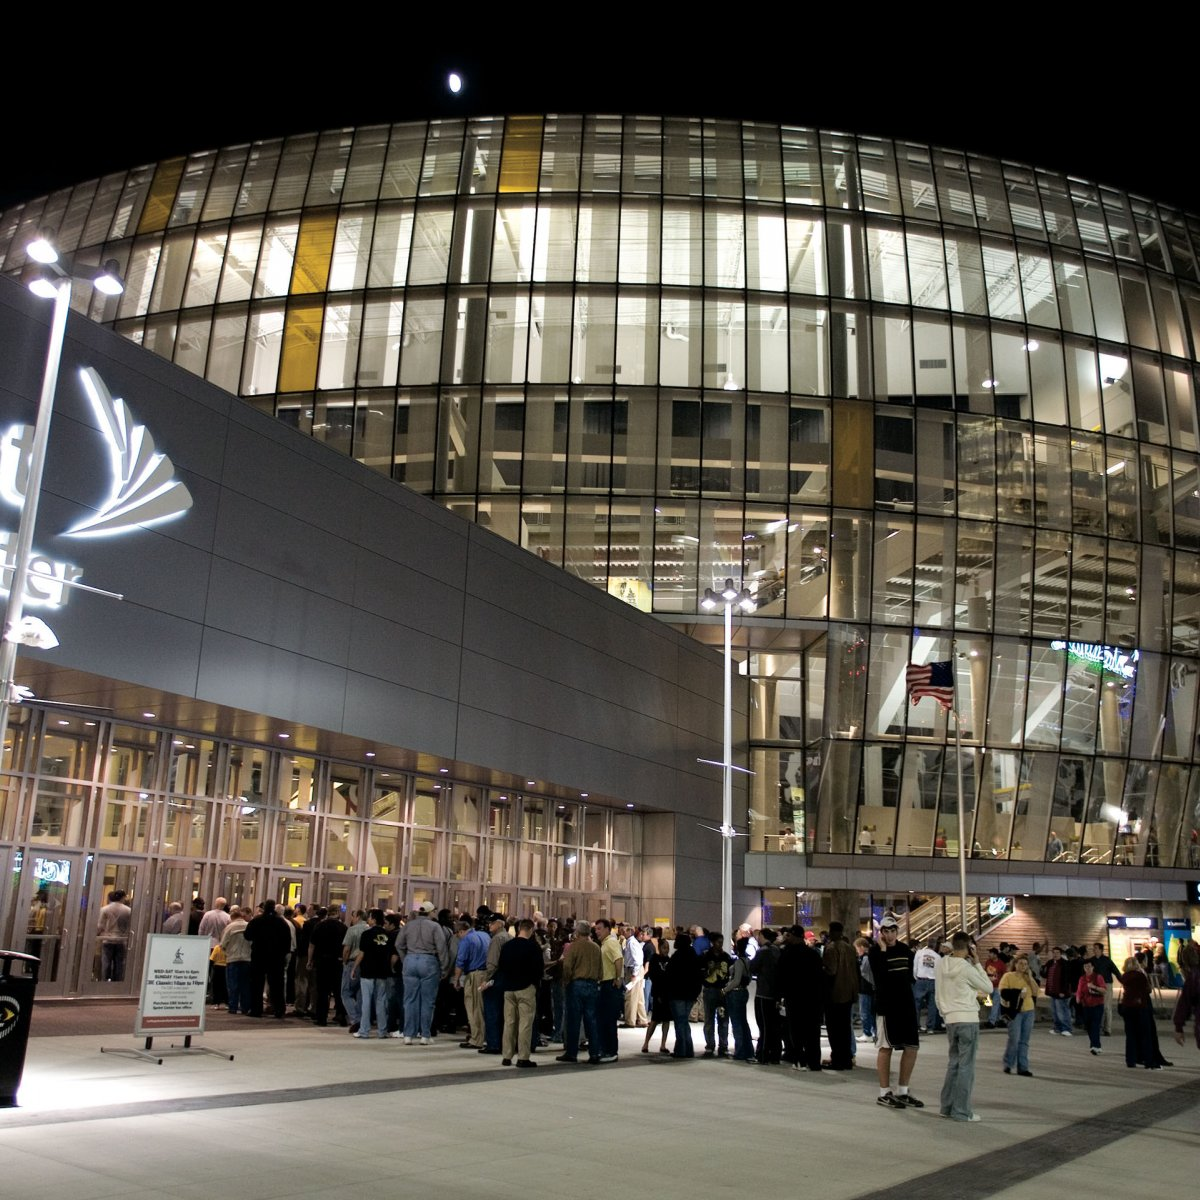 Exterior Image of Sprint Center at night